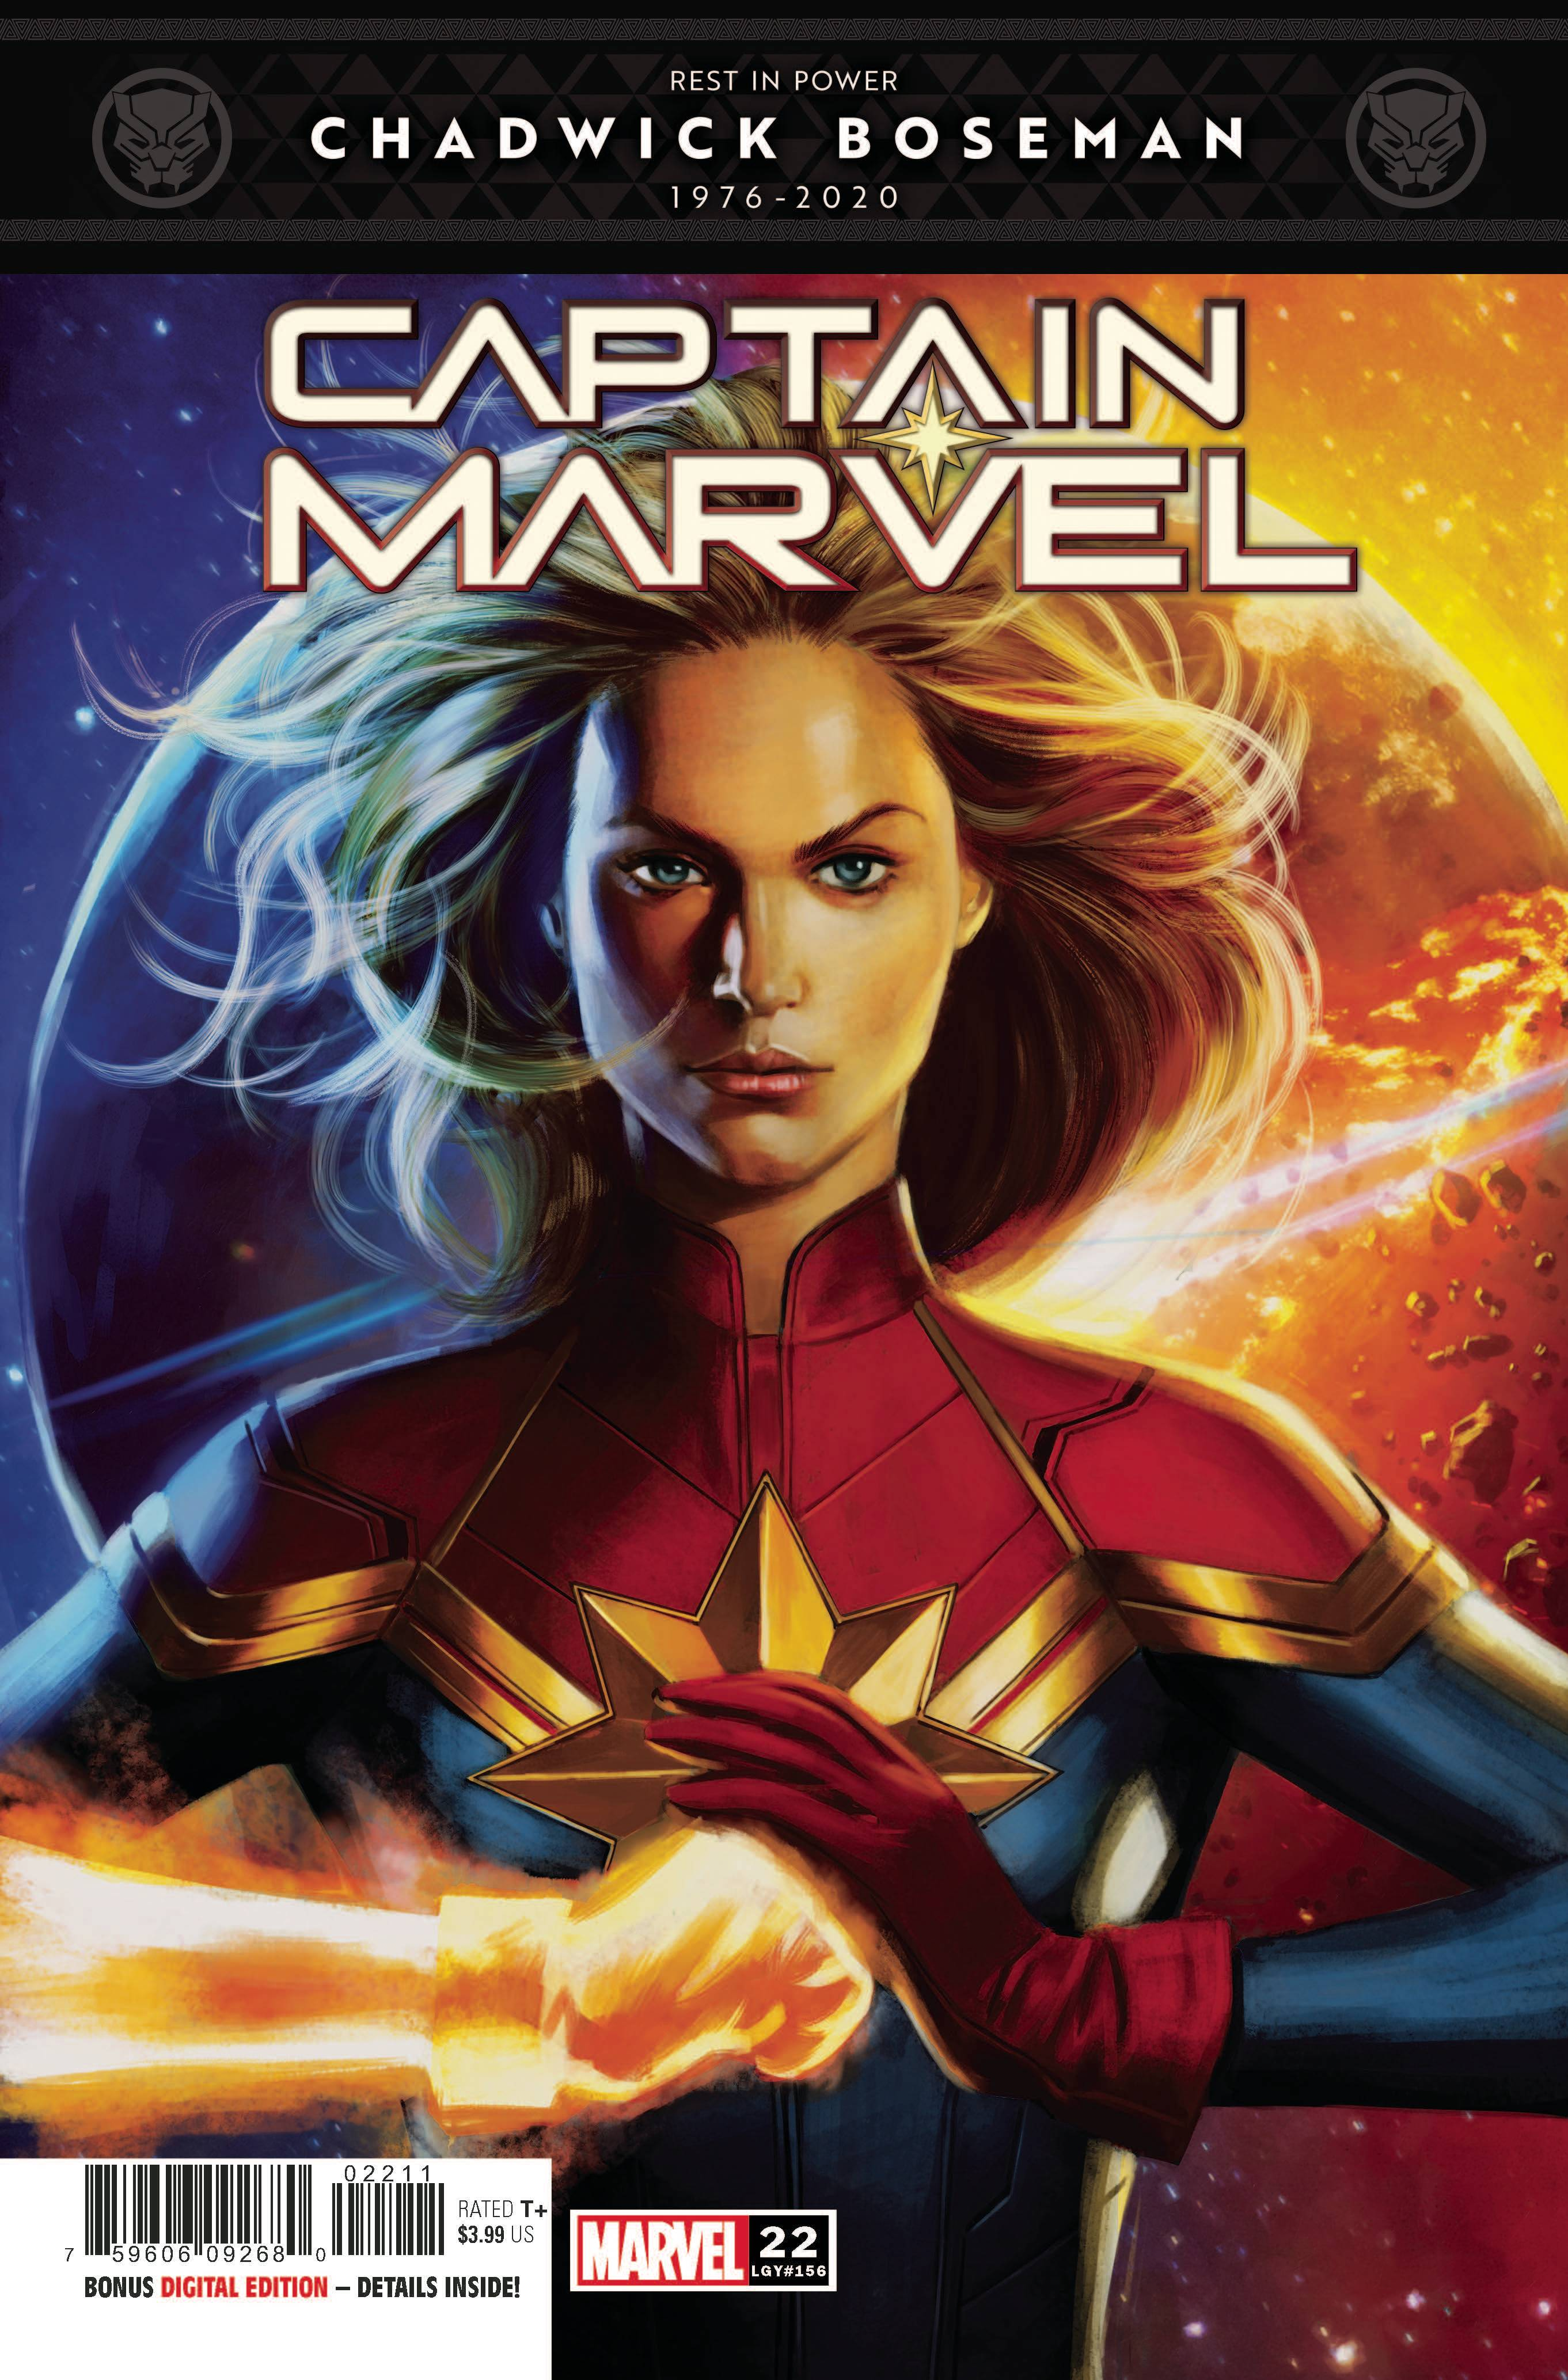 CAPTAIN MARVEL #22